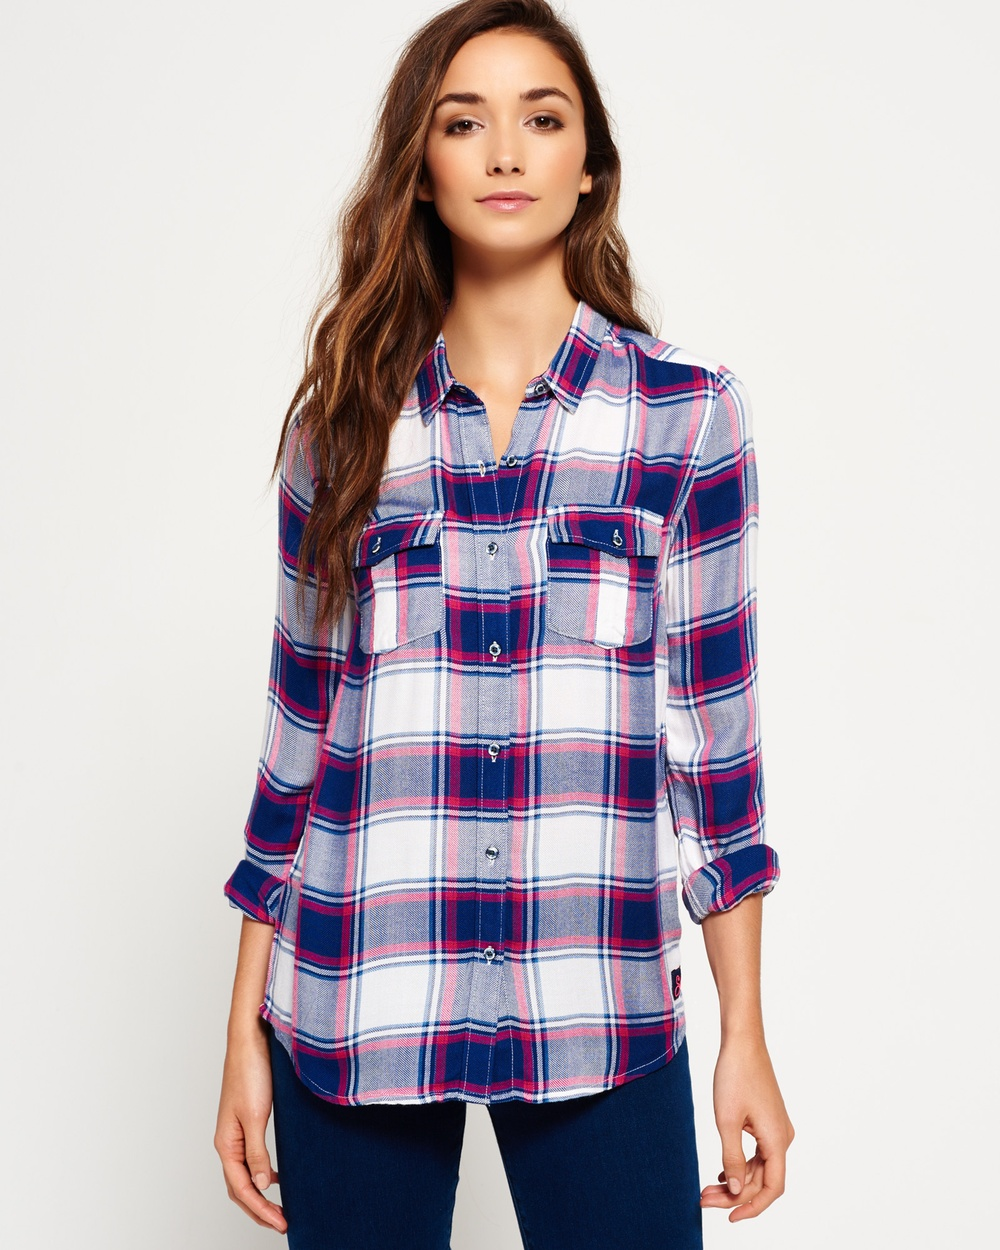 Superdry Nashville Boyfriend Check Shirt Tops Gilford Check Navy Nashville Boyfriend Check Shirt